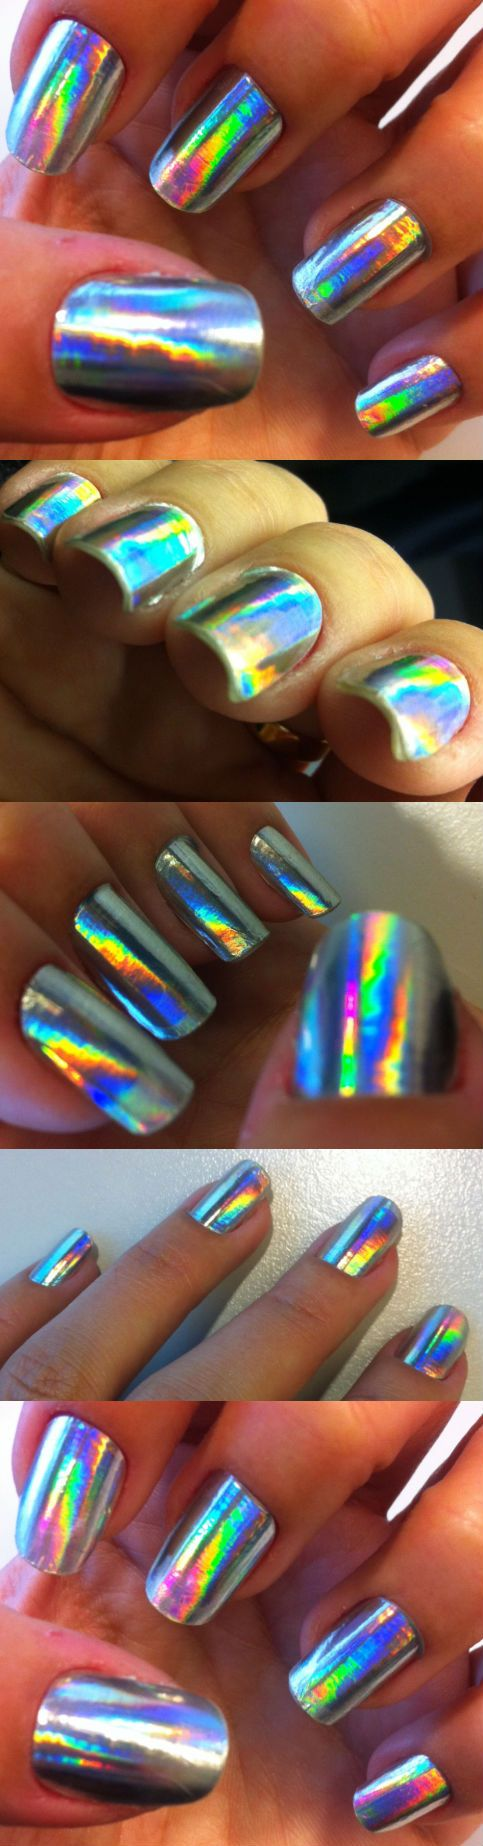 Holographic chrome nails - perfect for #AW14 for a night out...x